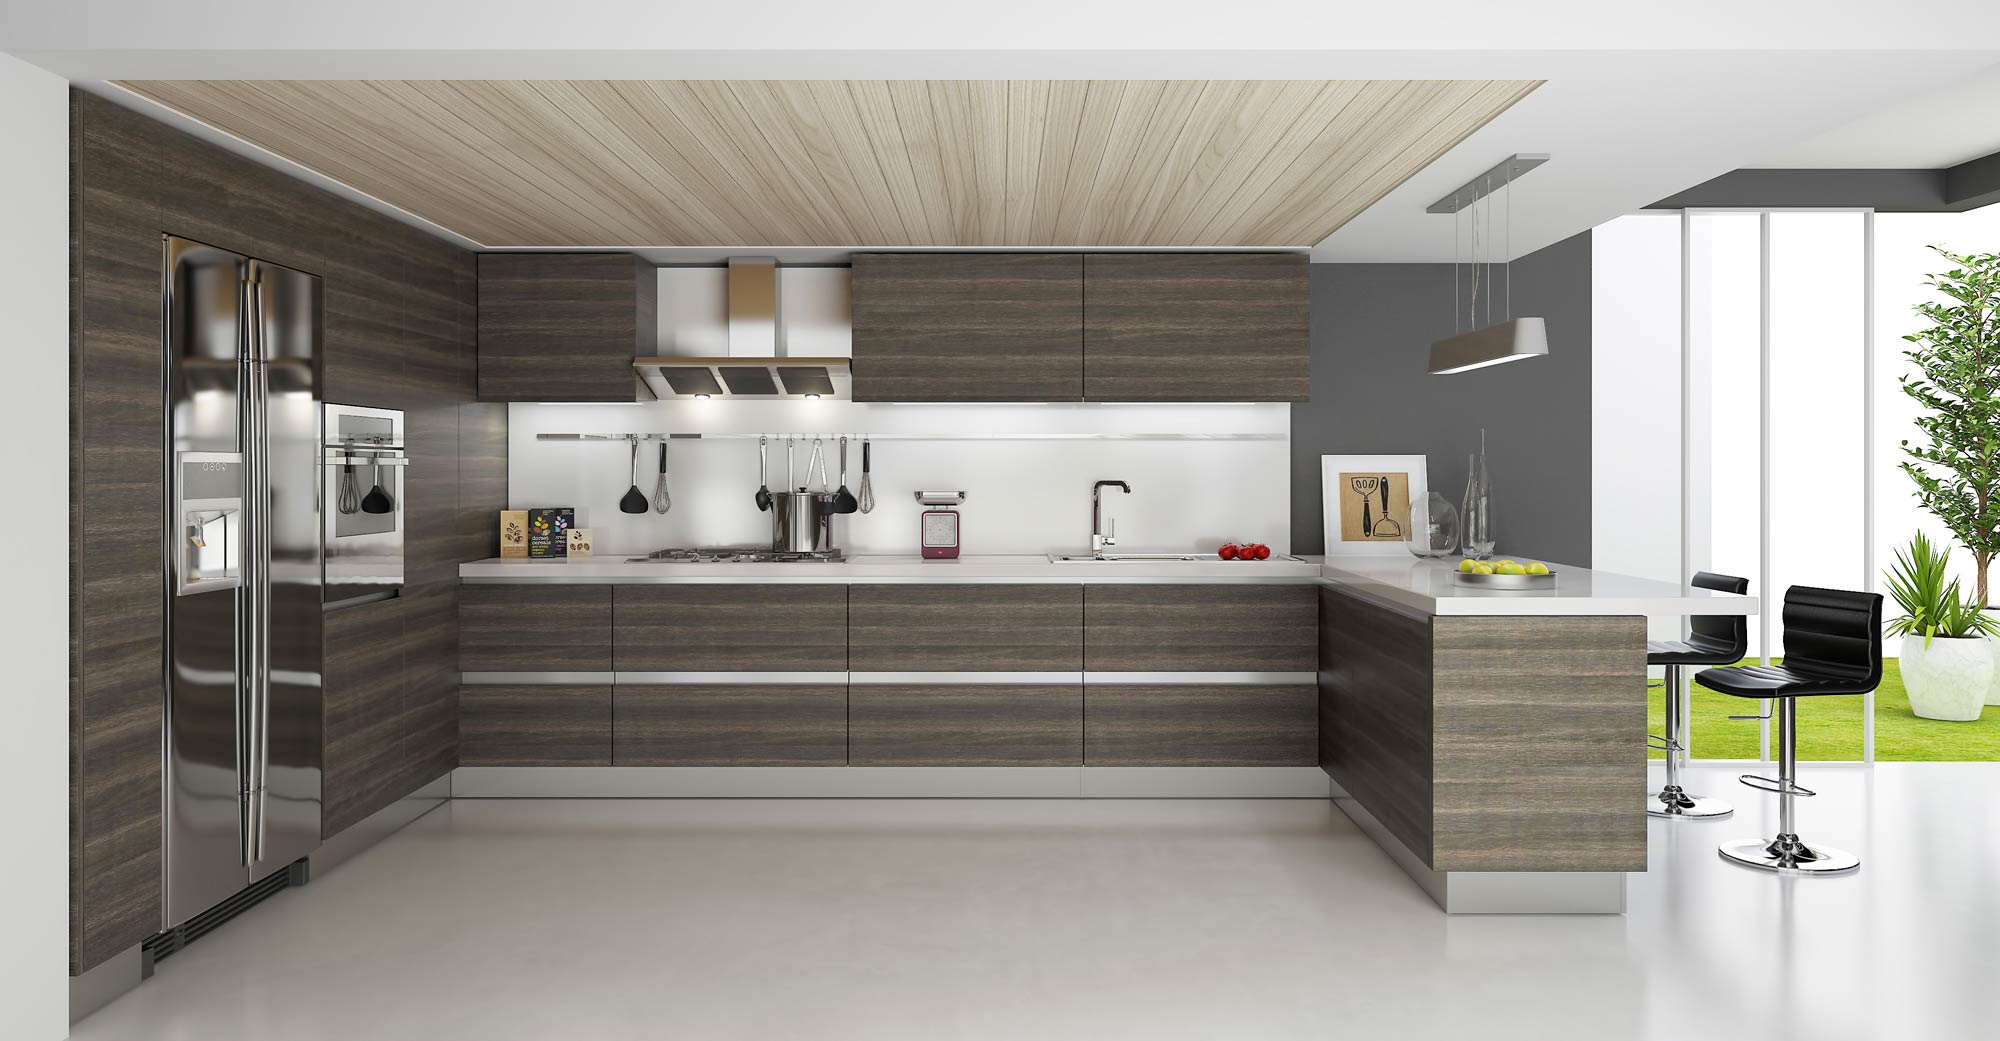 contemporary and modern kitchens what is the difference modern cabinets kitchen Contemporary and modern kitchens what is the difference